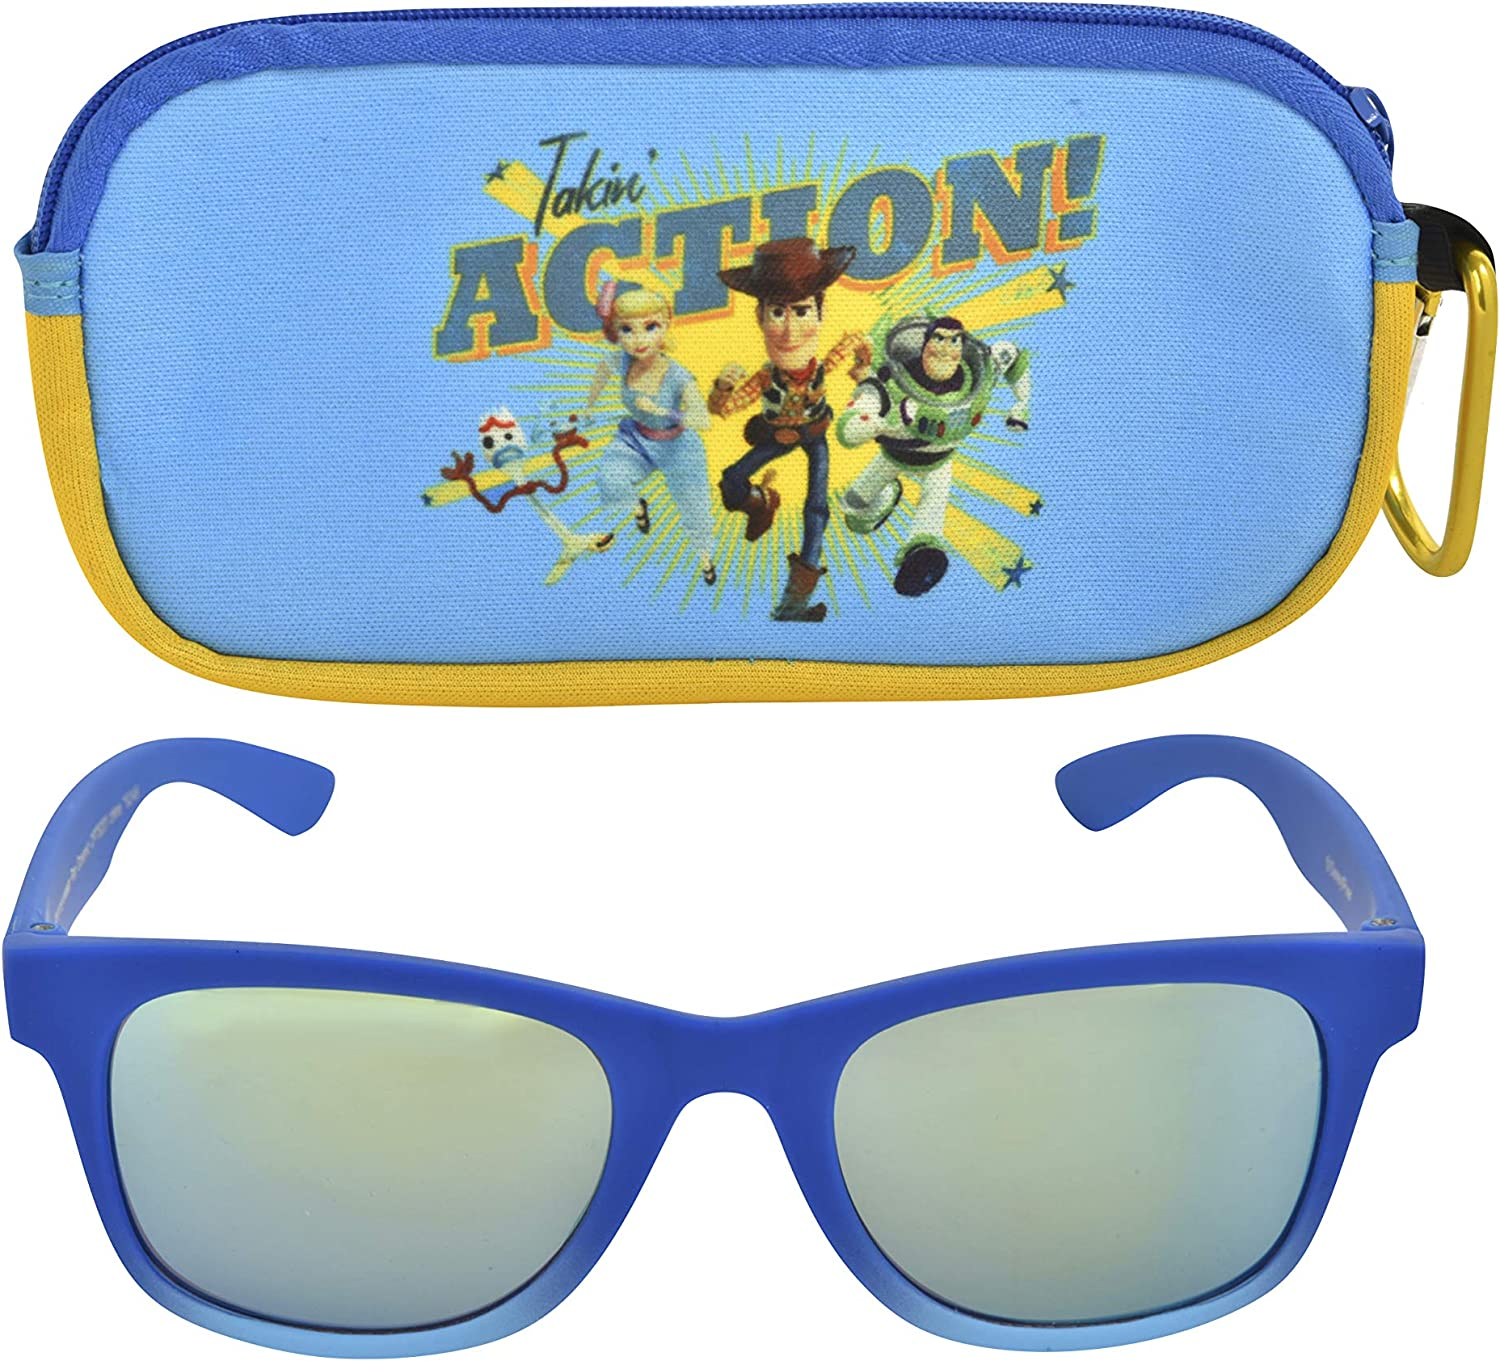 Toy Story Kids Albuquerque Mall Sunglasses with Tod Case Protective Glasses Max 85% OFF